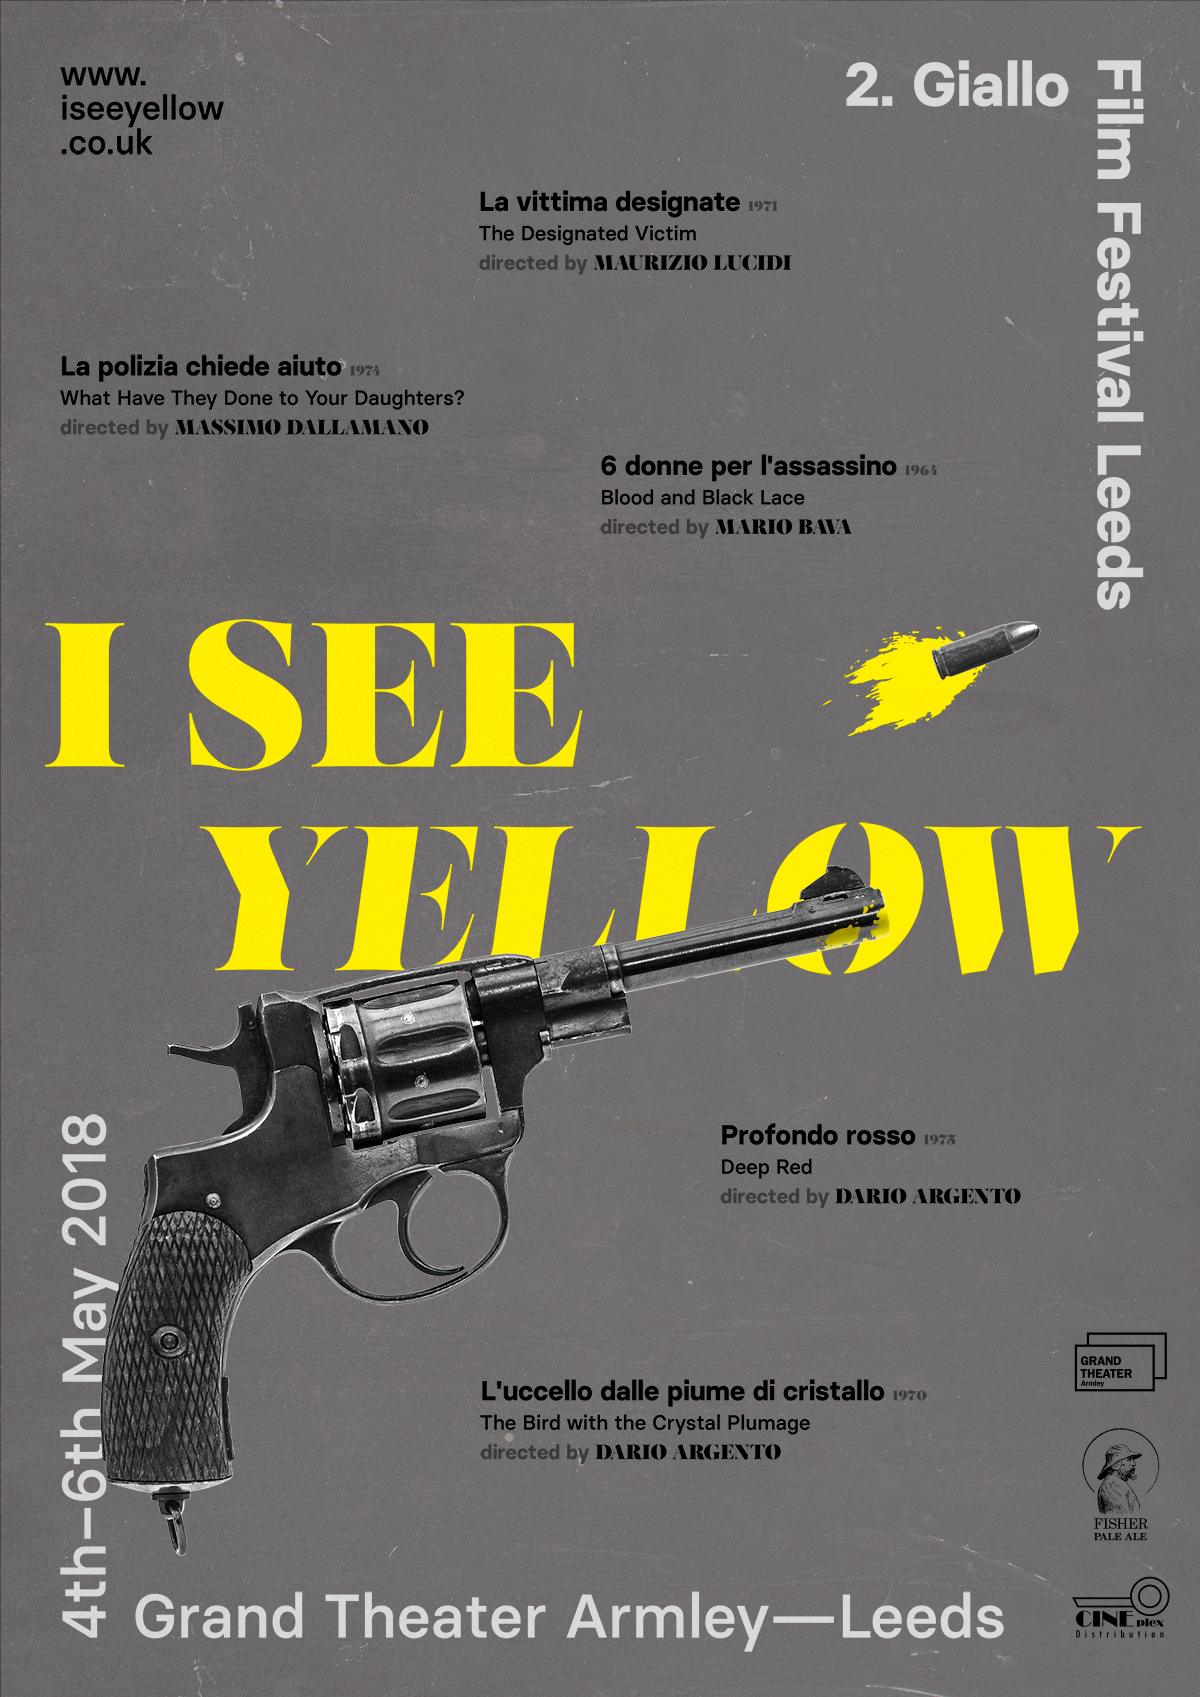 Film festival i see yellow poster 03